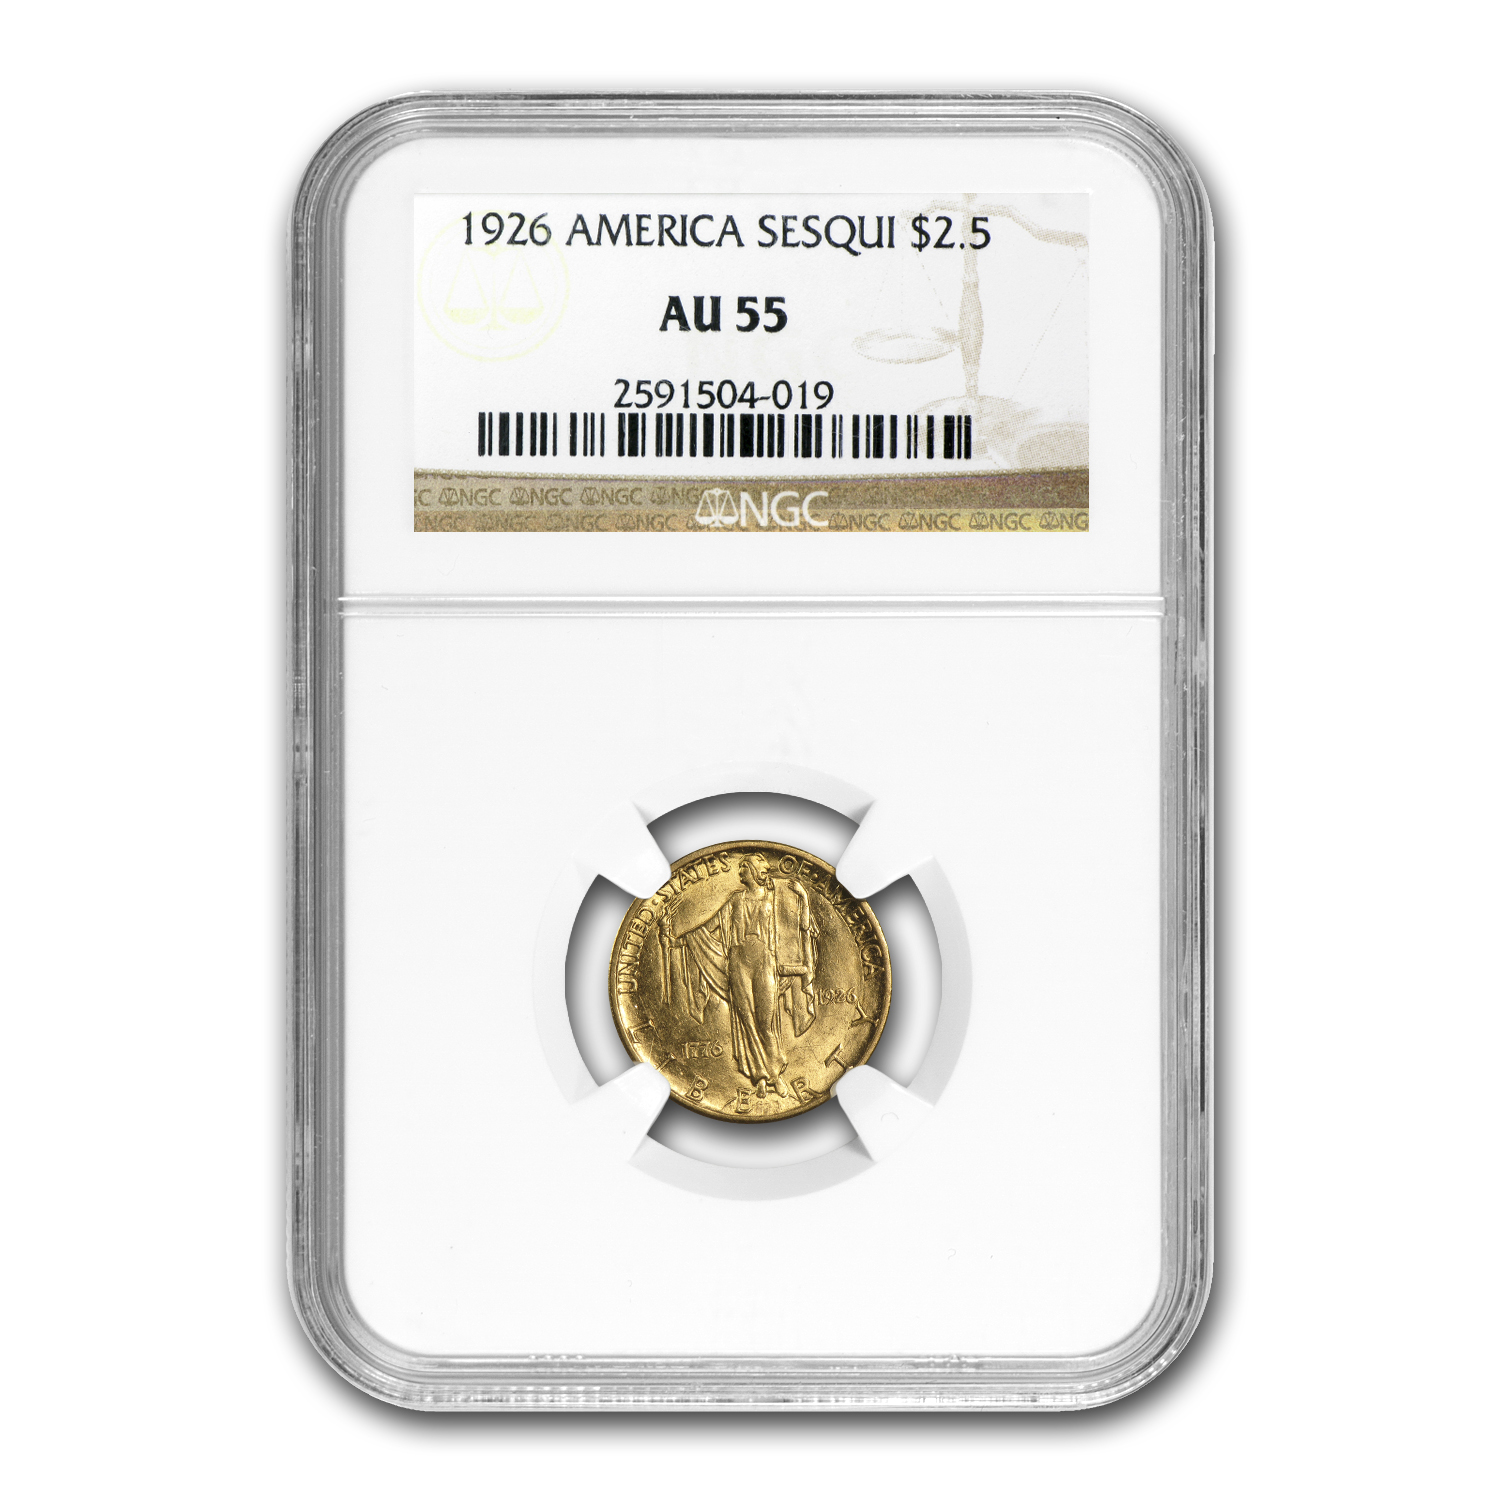 1926 $2.50 Gold America Sesquicentennial AU-55 NGC